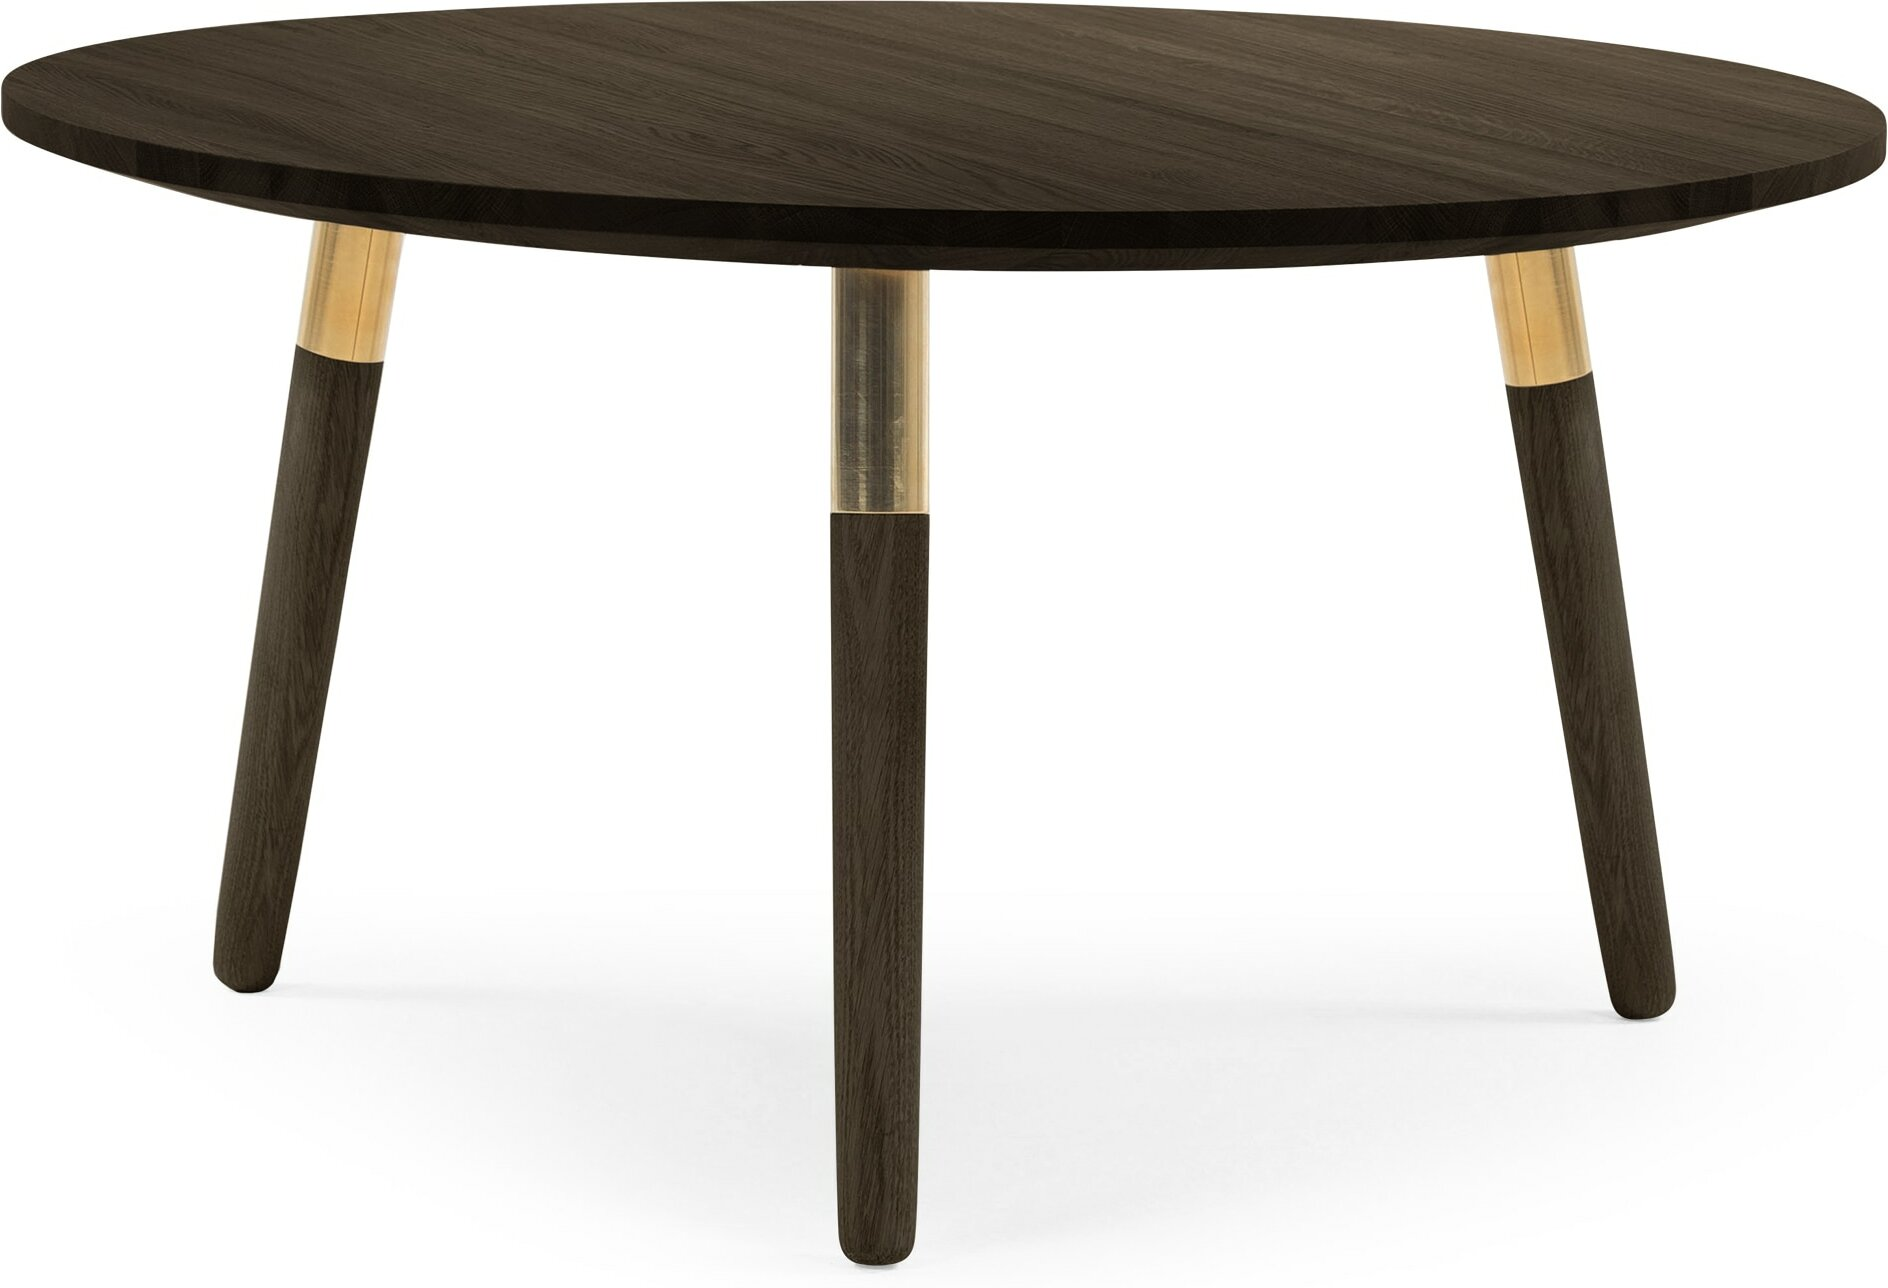 Buy Cheap Round Coffee Table Compare Tables Prices For Best Uk Deals